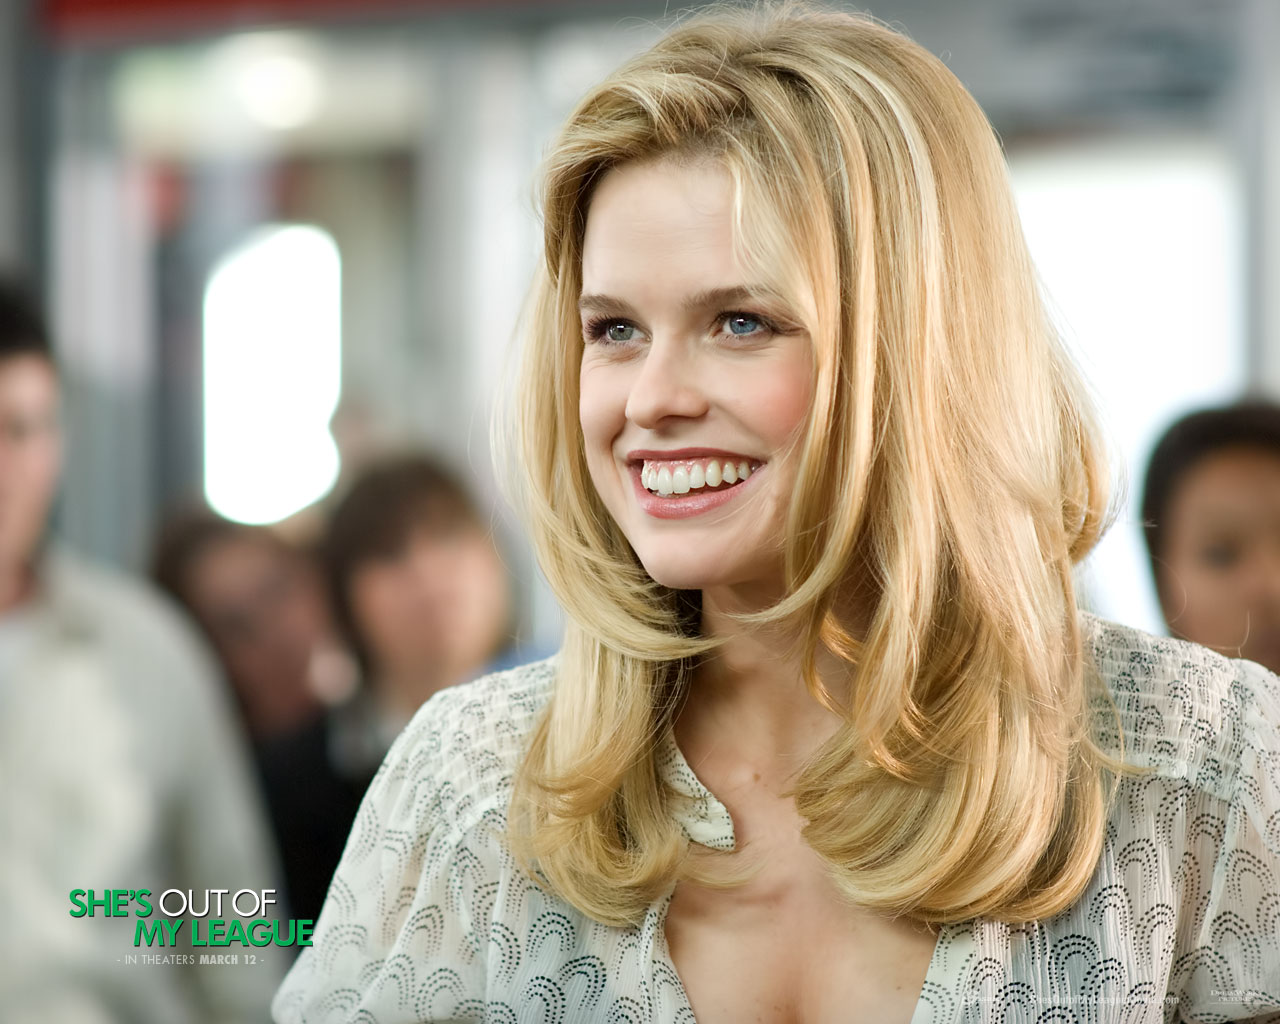 http://1.bp.blogspot.com/-yfN8kmWbcZ8/TbIZZx4JocI/AAAAAAAABRk/3WvQAx1A3t4/s1600/Alice_Eve_in_Shes_Out_of_My_League_Wallpaper.jpg